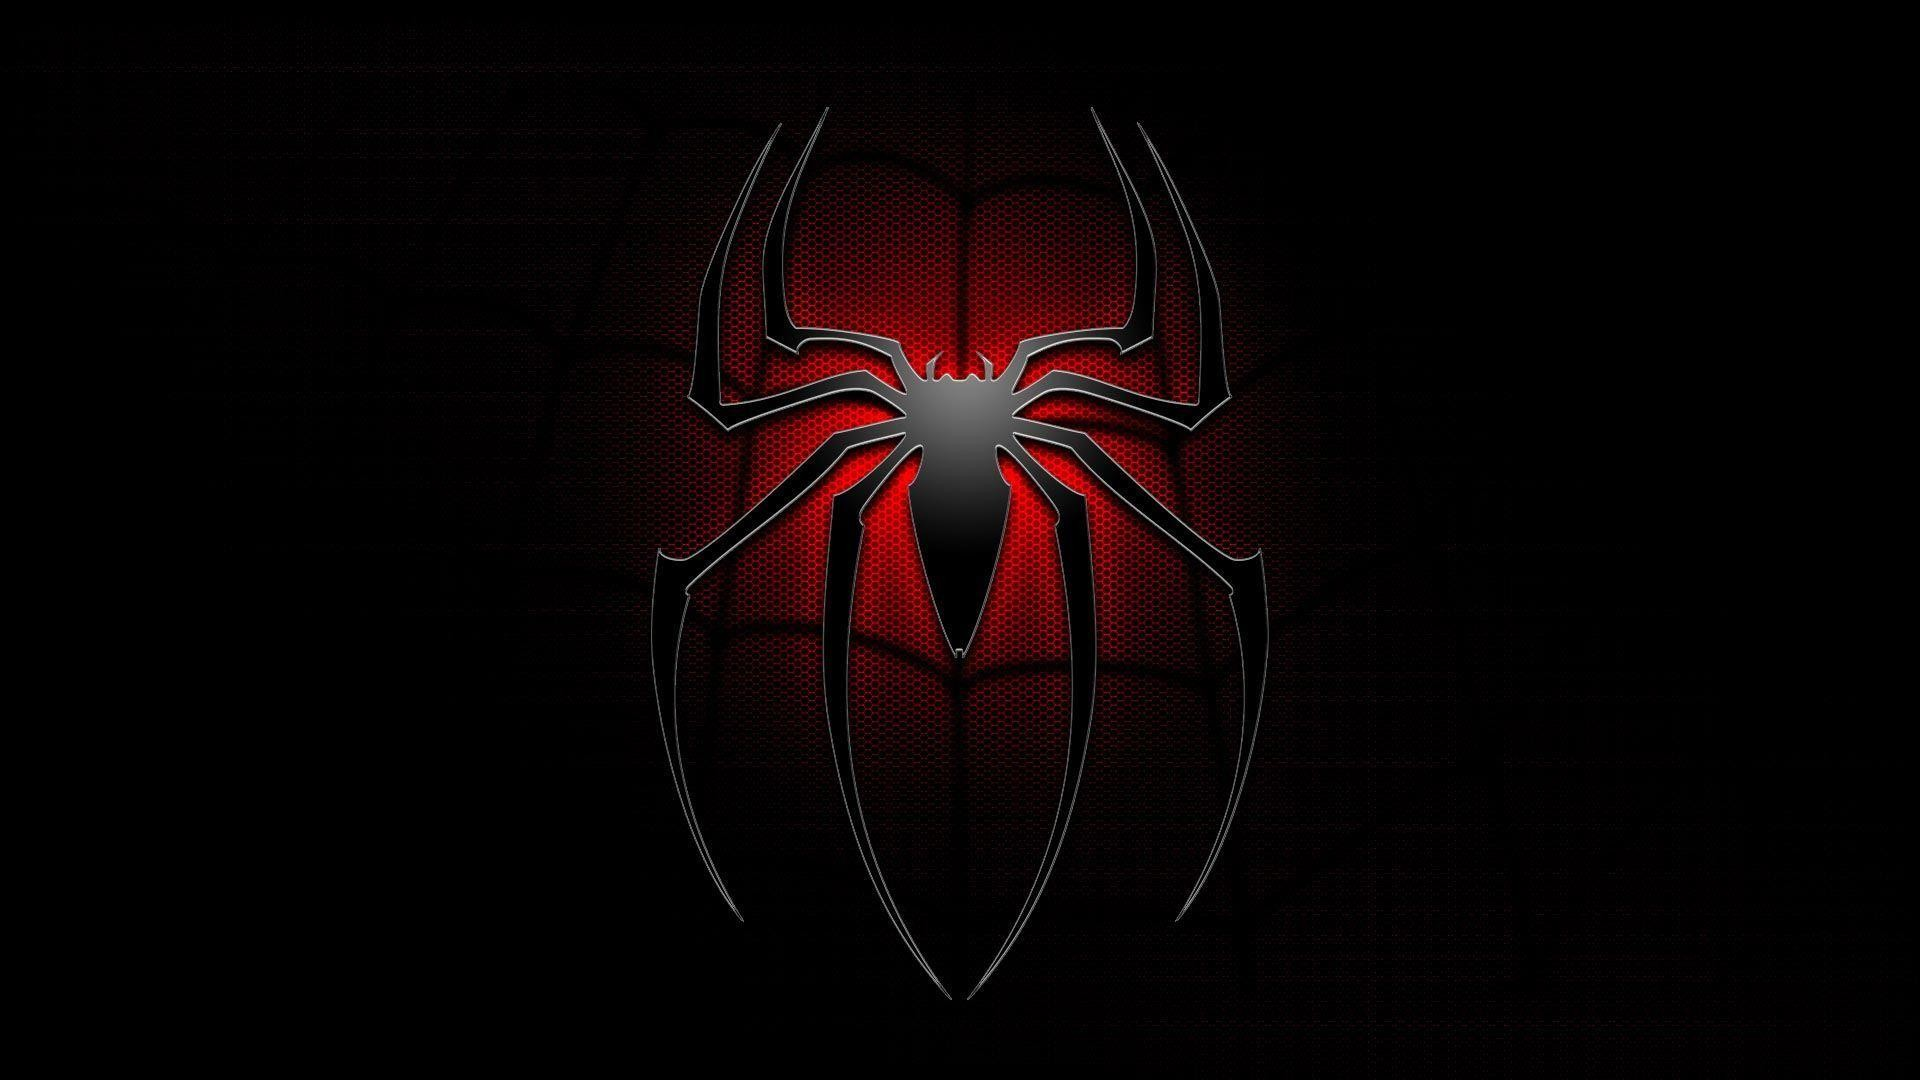 Spiderman iPhone Wallpaper HD 83 images 1920x1080